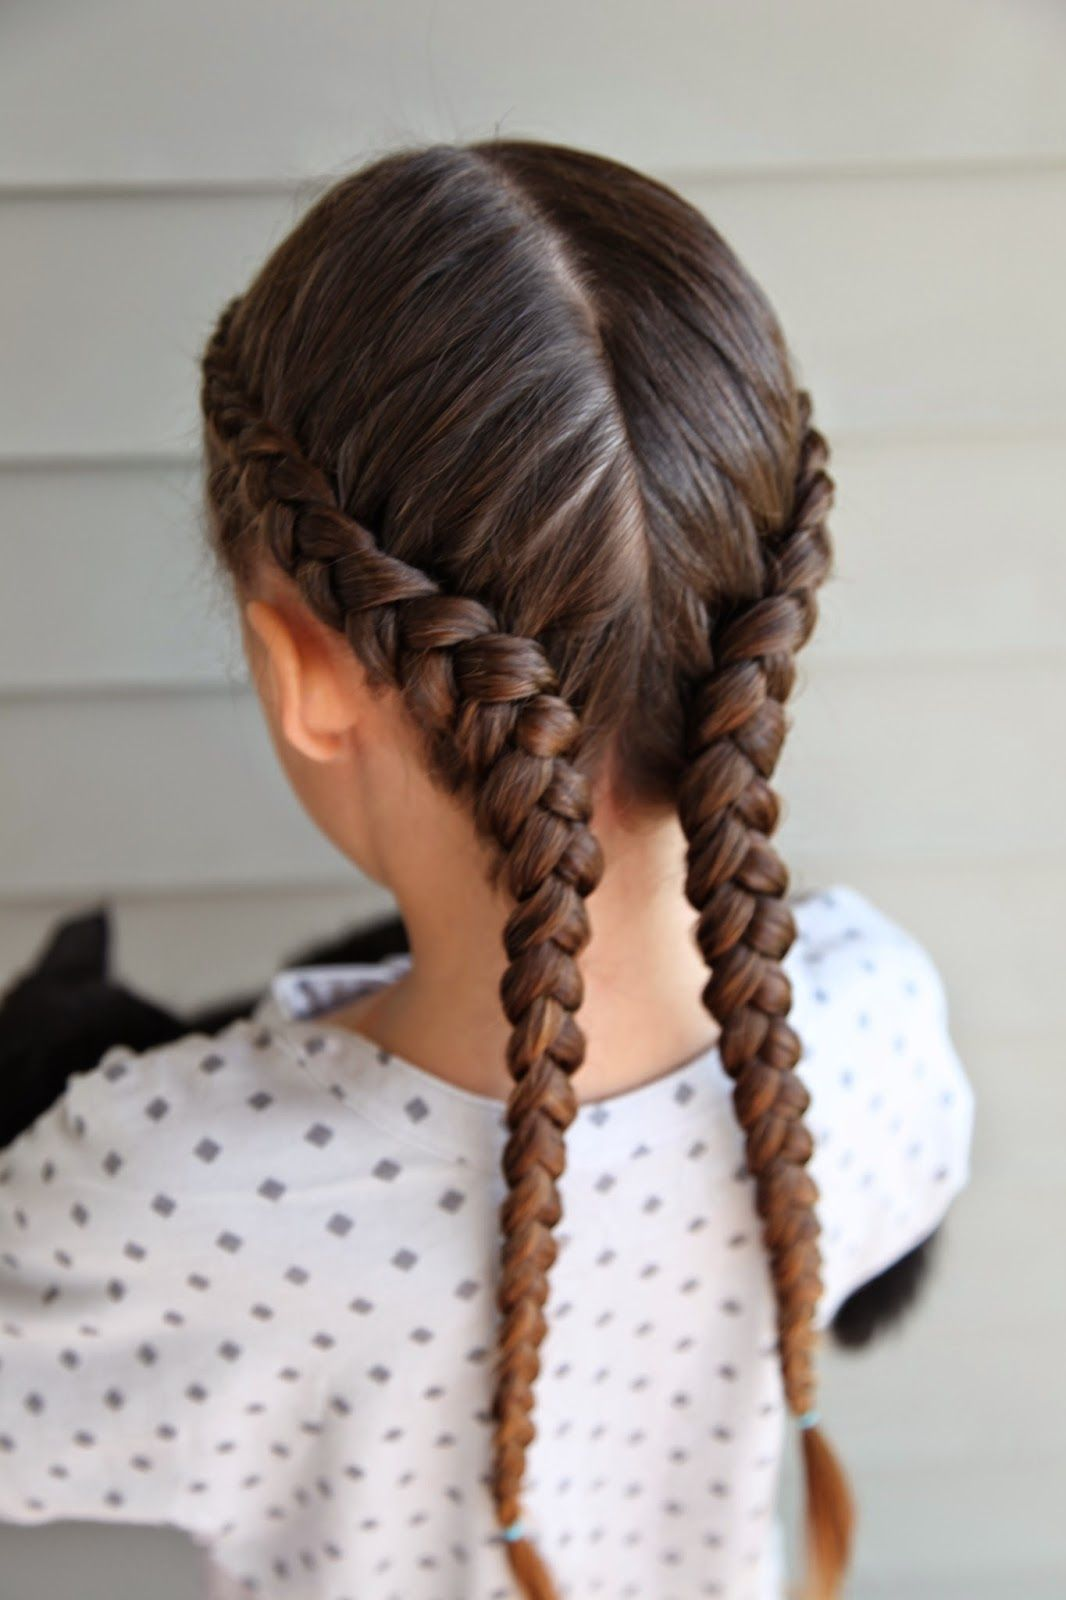 Abella S Braids This Is Simple Dutch Braids But It Looks A Little Different Because I Kept The Braids Low Toward The O Frisyrideer Tjejfrisyrer Barnfrisyrer